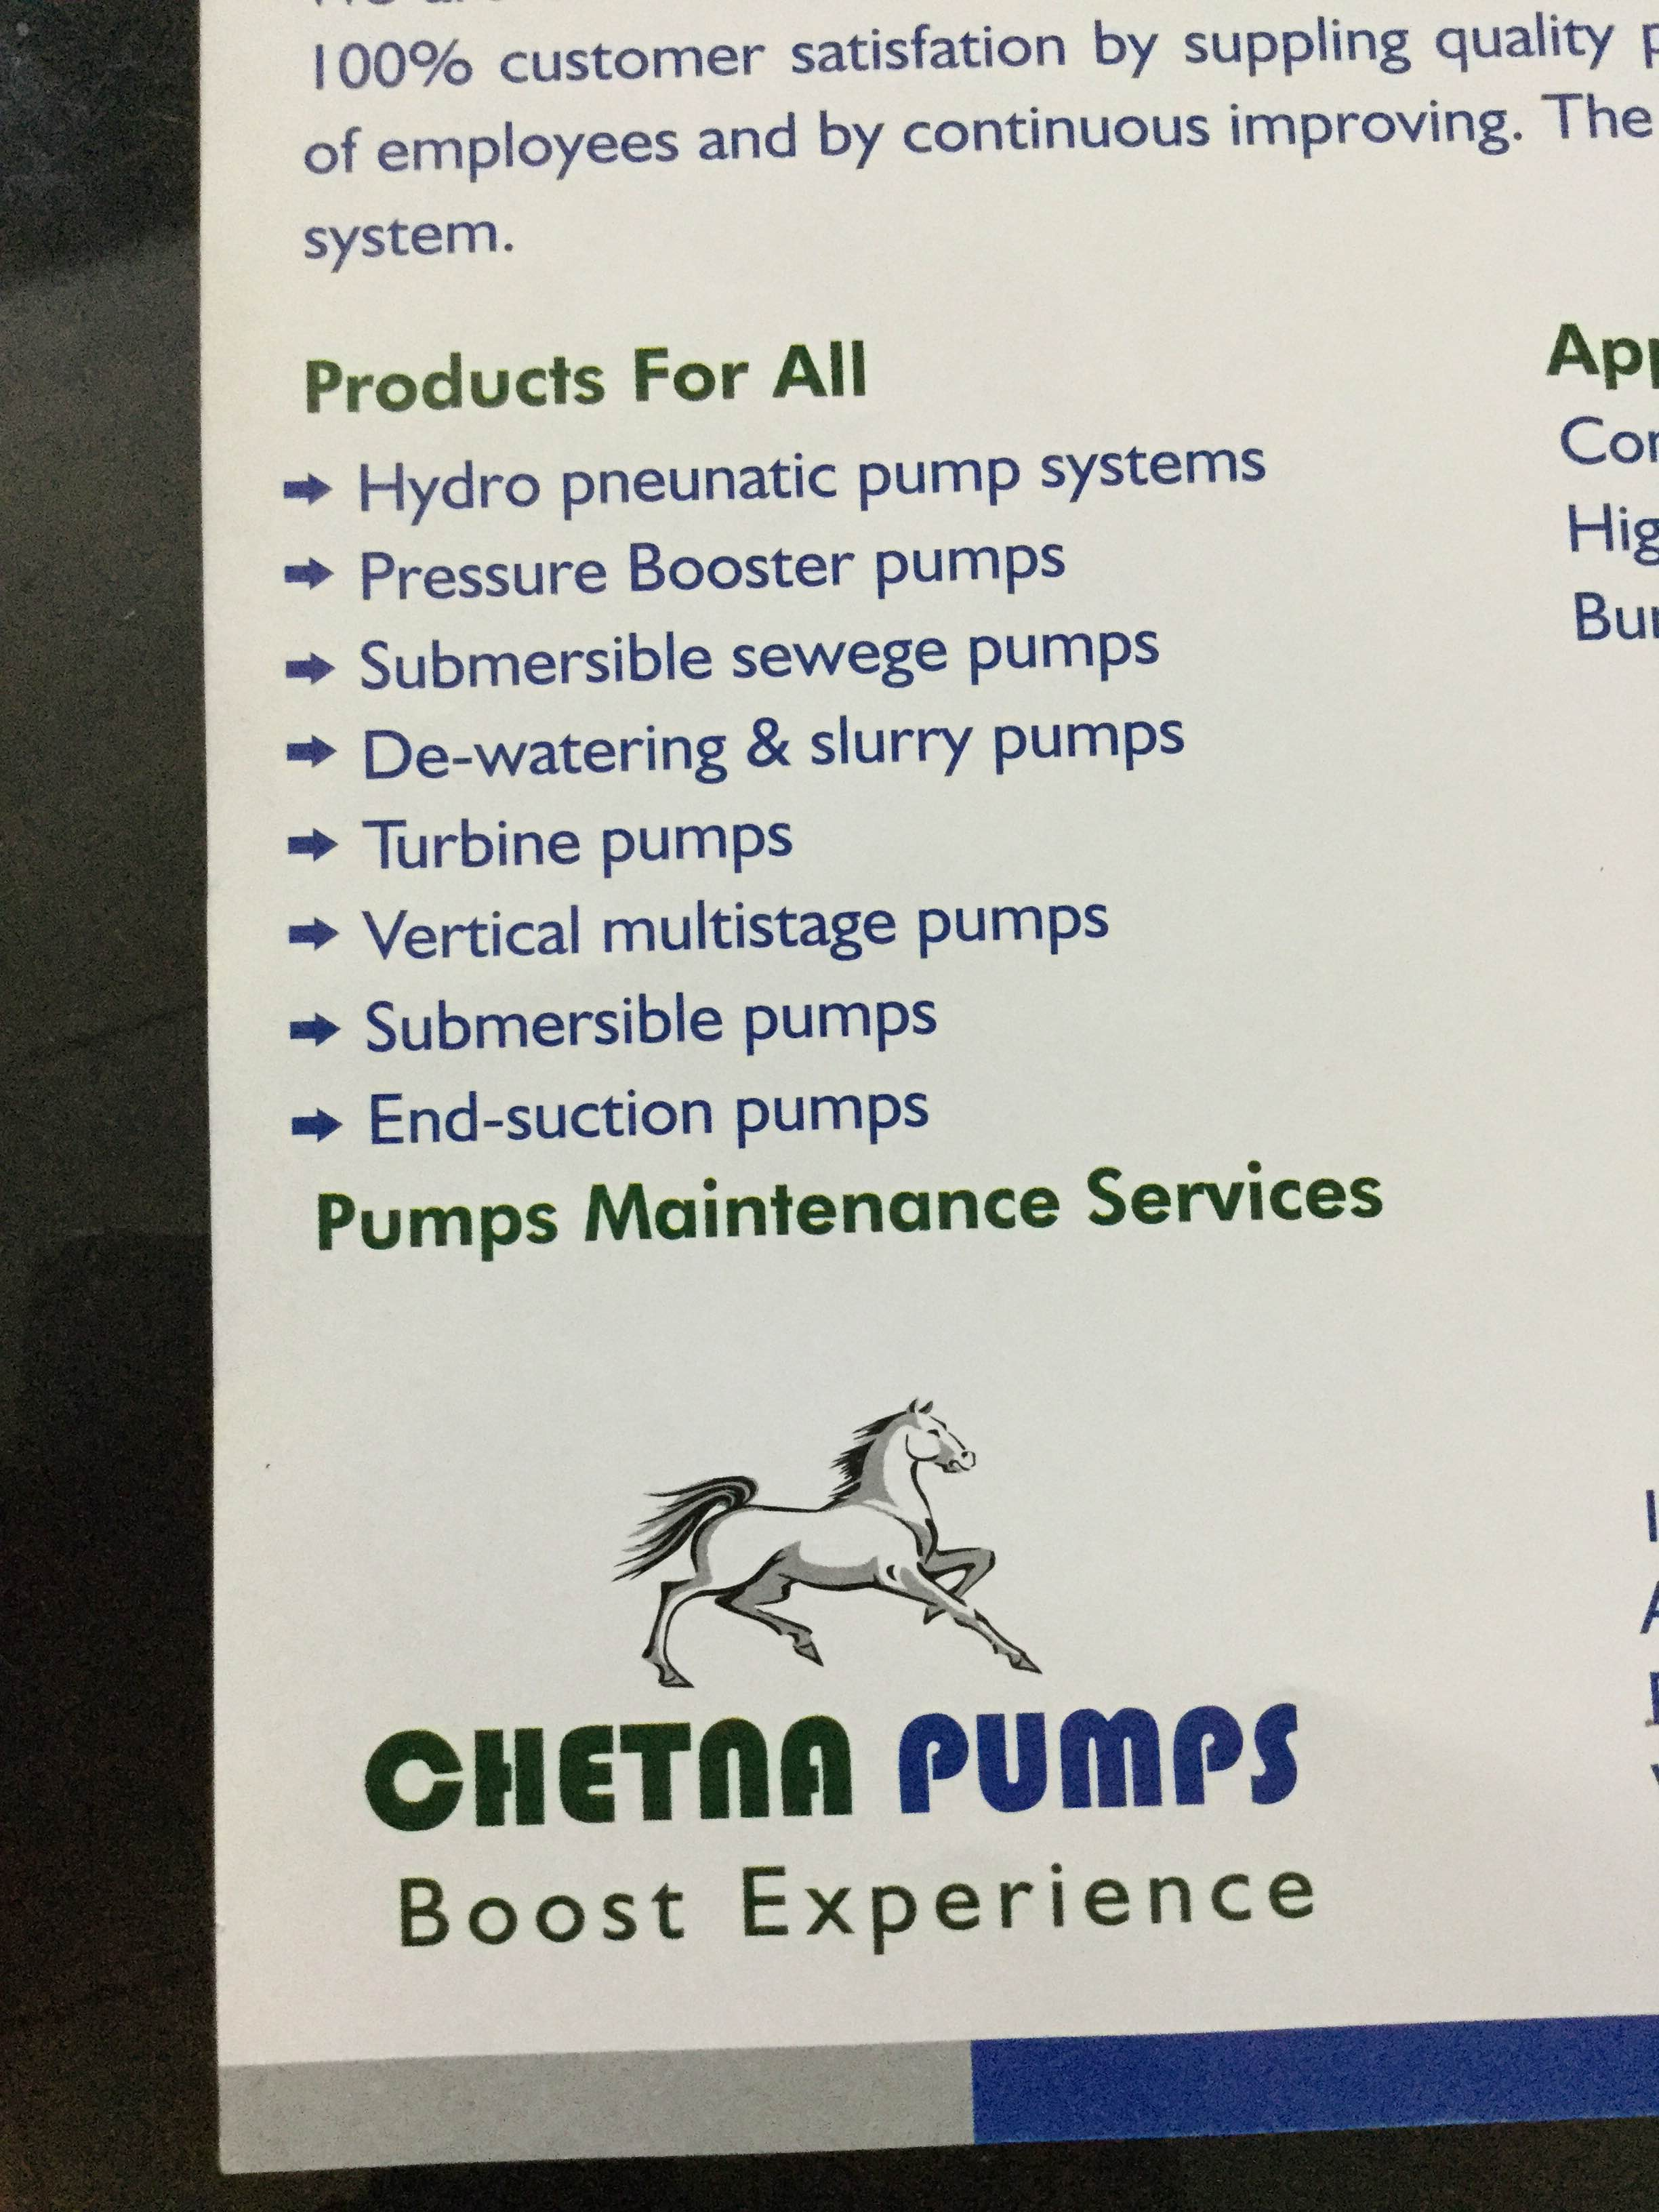 chetna pumps is into quality manufacturing of sewage pump , drainage pump. we are into this industry from past 25 years.